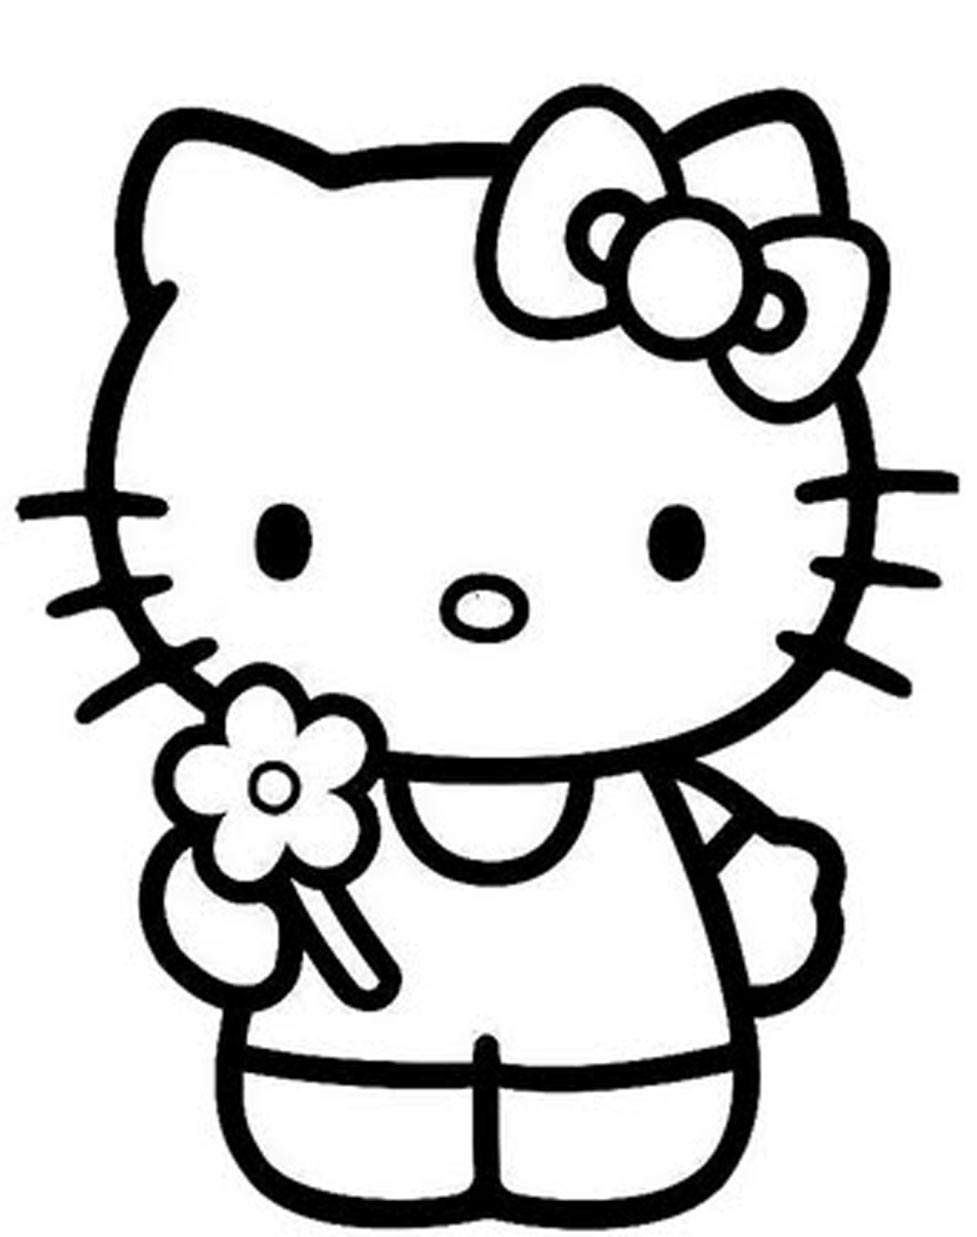 Coloriages imprimer hello kitty num ro 17750 - Hello kitty imprimer ...